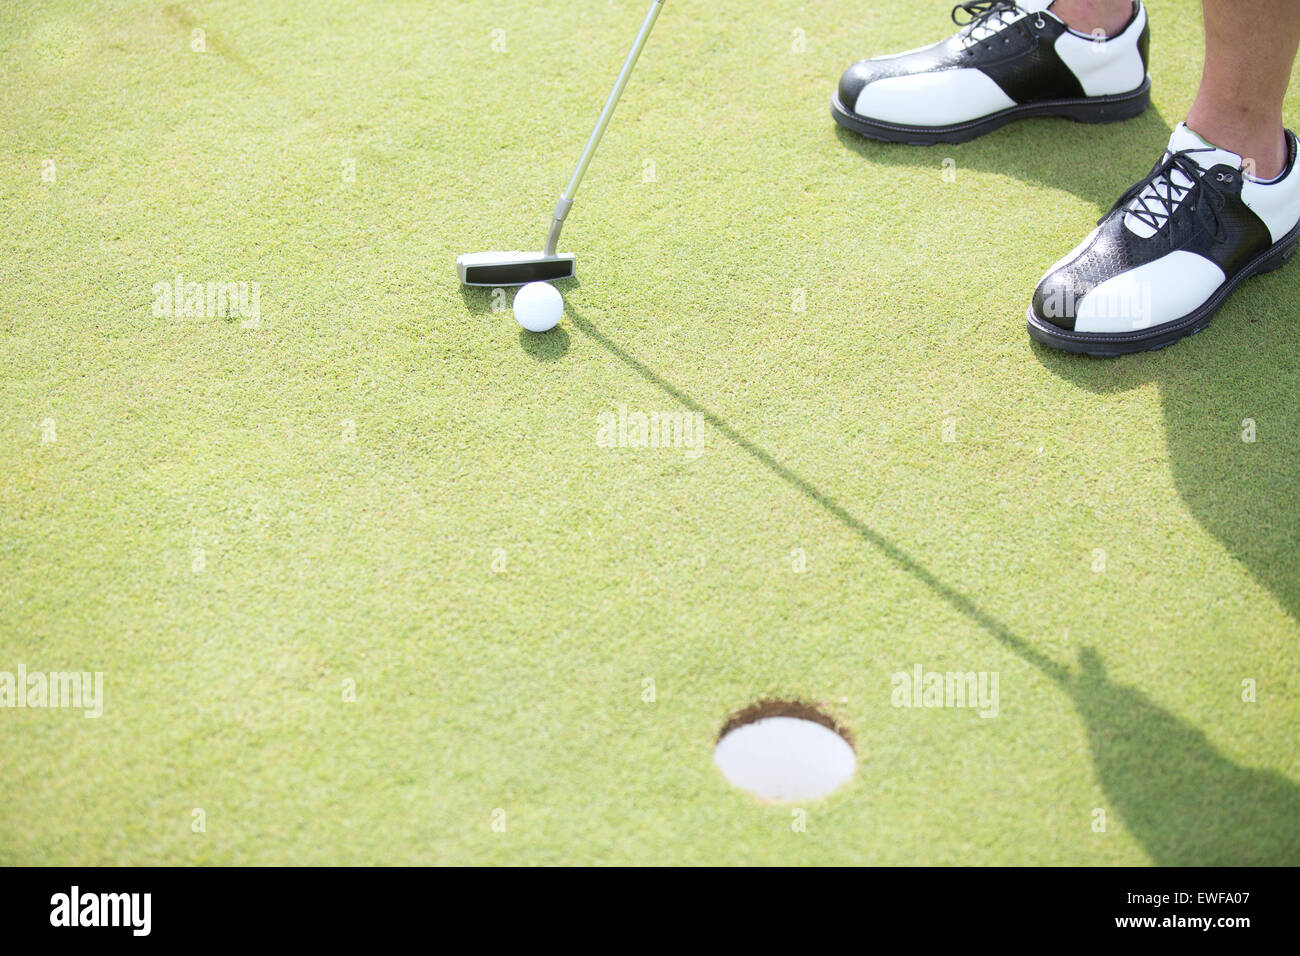 High angle view of man playing golf Photo Stock